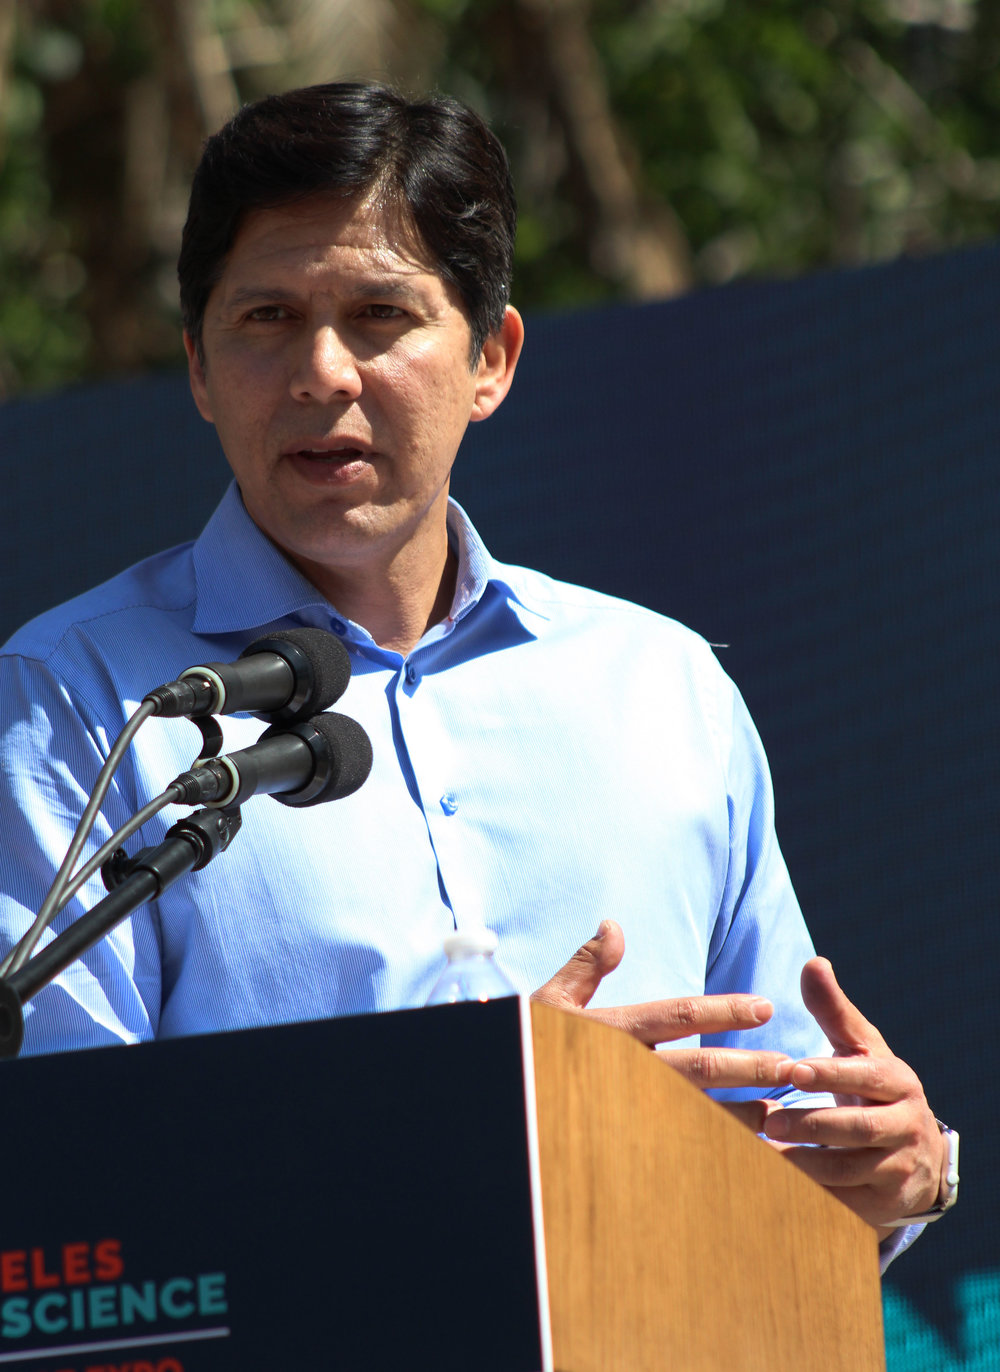 Califonia State Senator, Kevin de Leon, speaks of policy change at the LA March for Science in Pershing Square, Los Angeles, California, on Saturday, April 14, 2018. (Pyper Witt/ the Corsair)